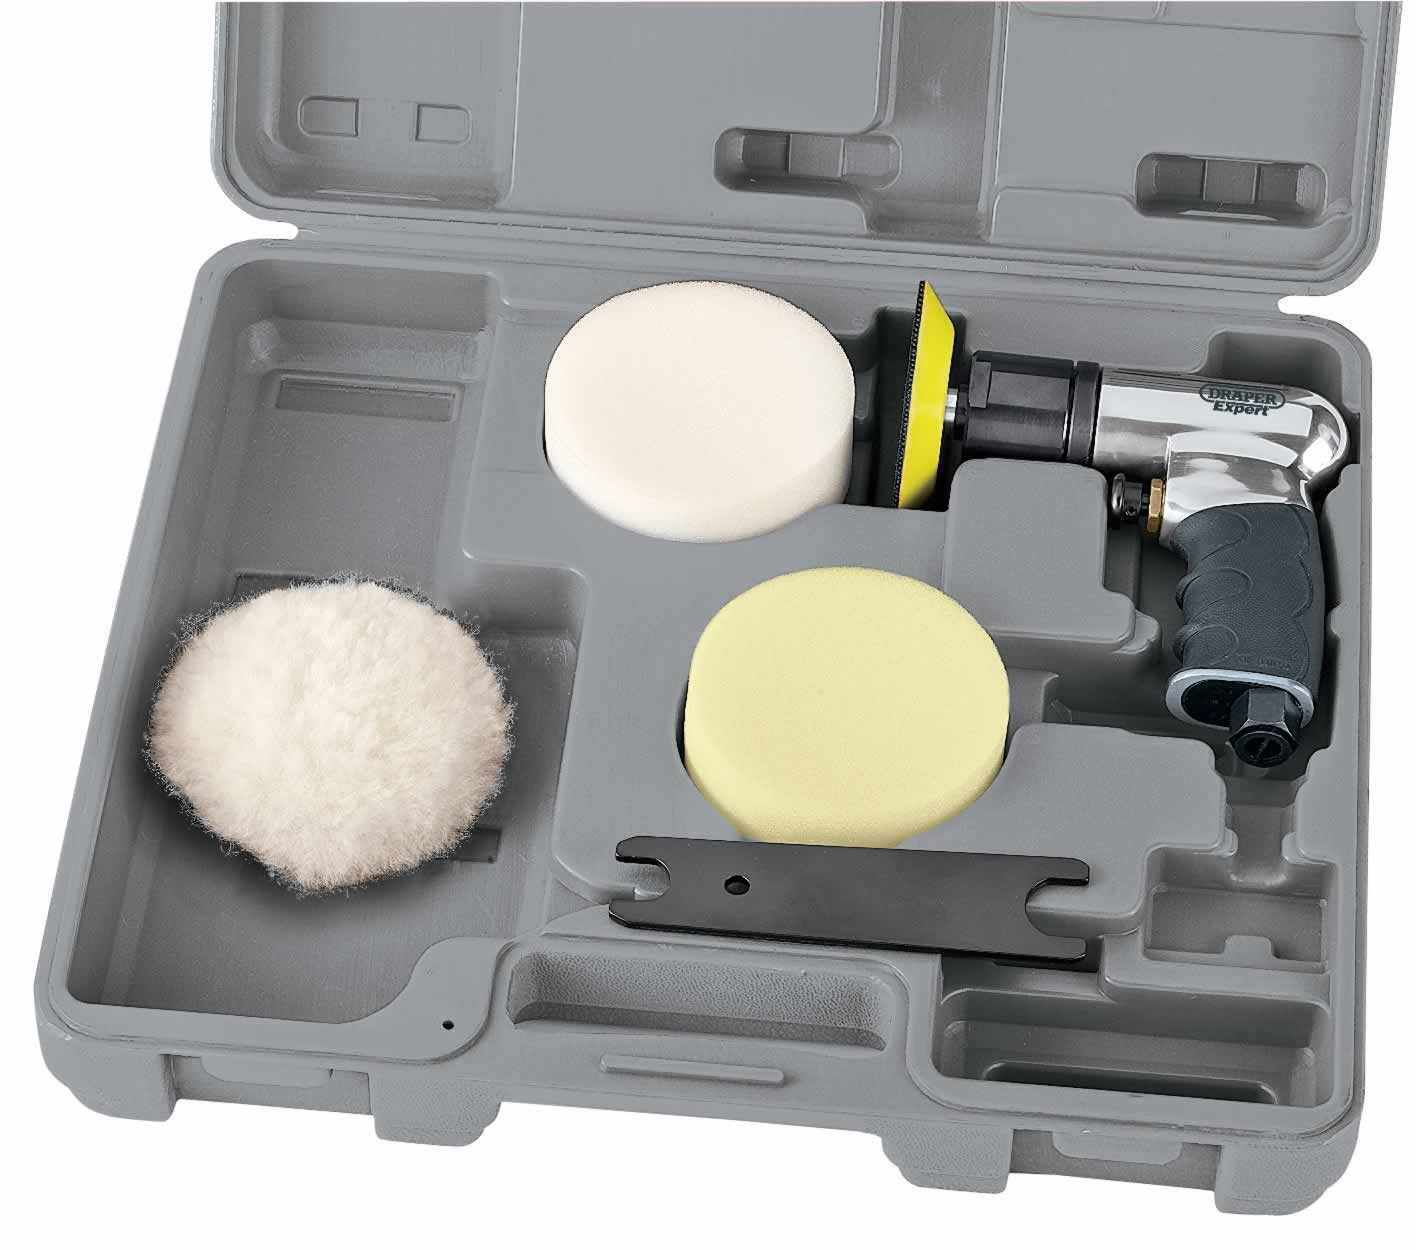 EXPERT 75MM COMPACT SOFT GRIP AIR POLISHER KIT